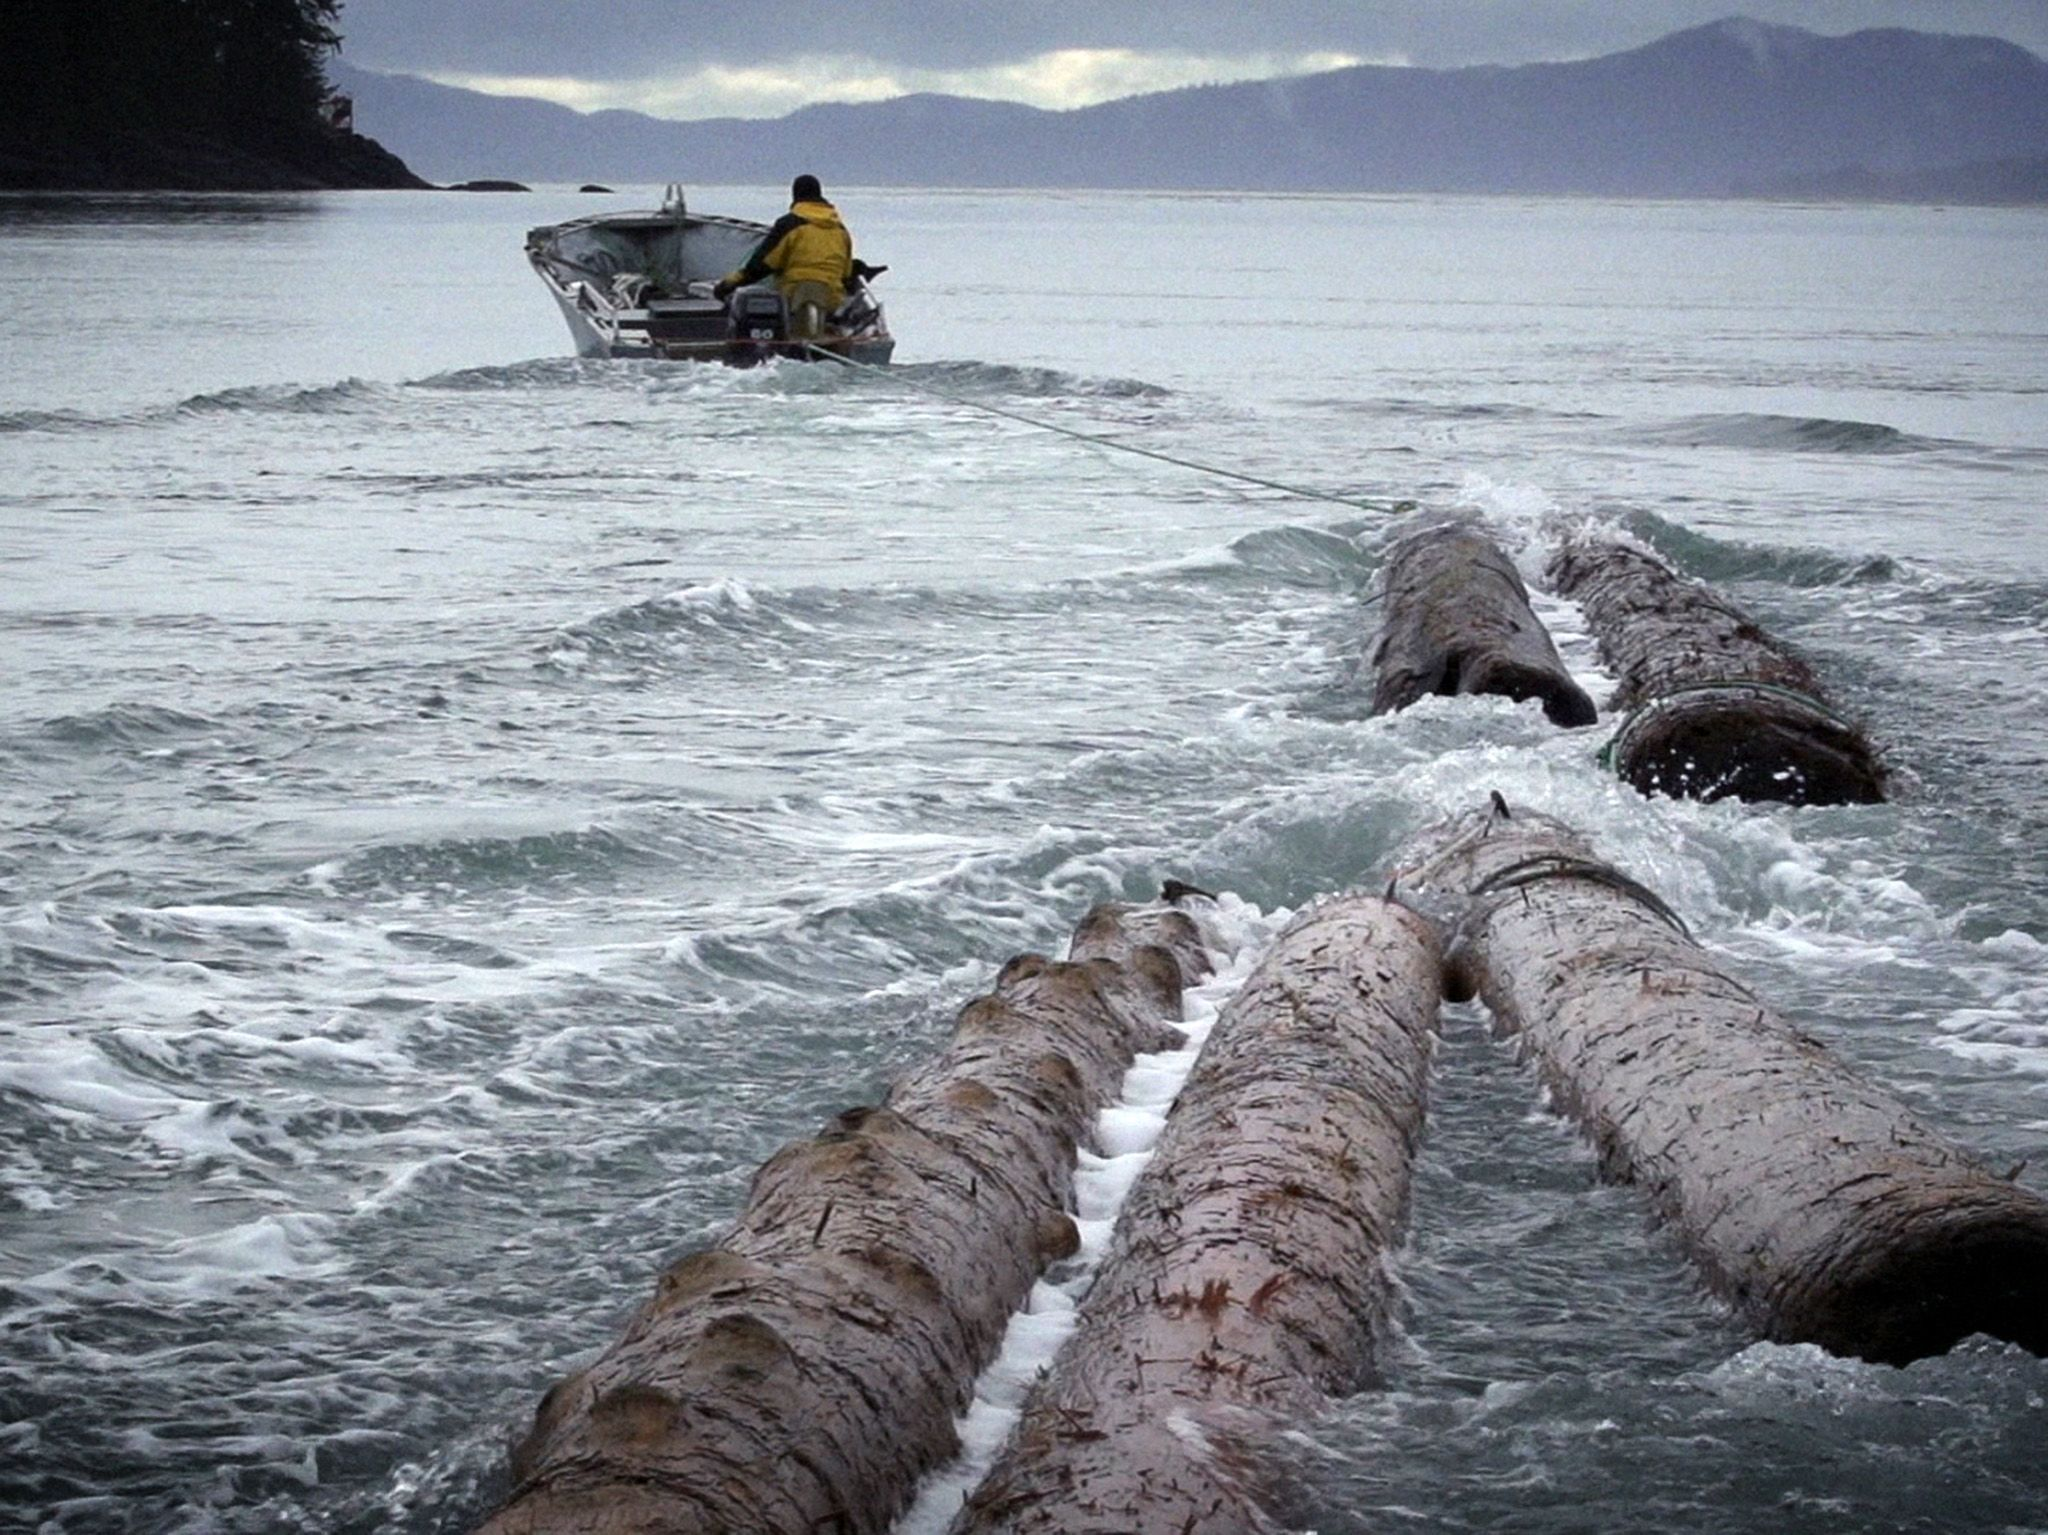 Port Protection, Alaska:  Sam collects logs for firewood.  This image is from Lawless Island Alaska. [Photo of the day - August 2019]